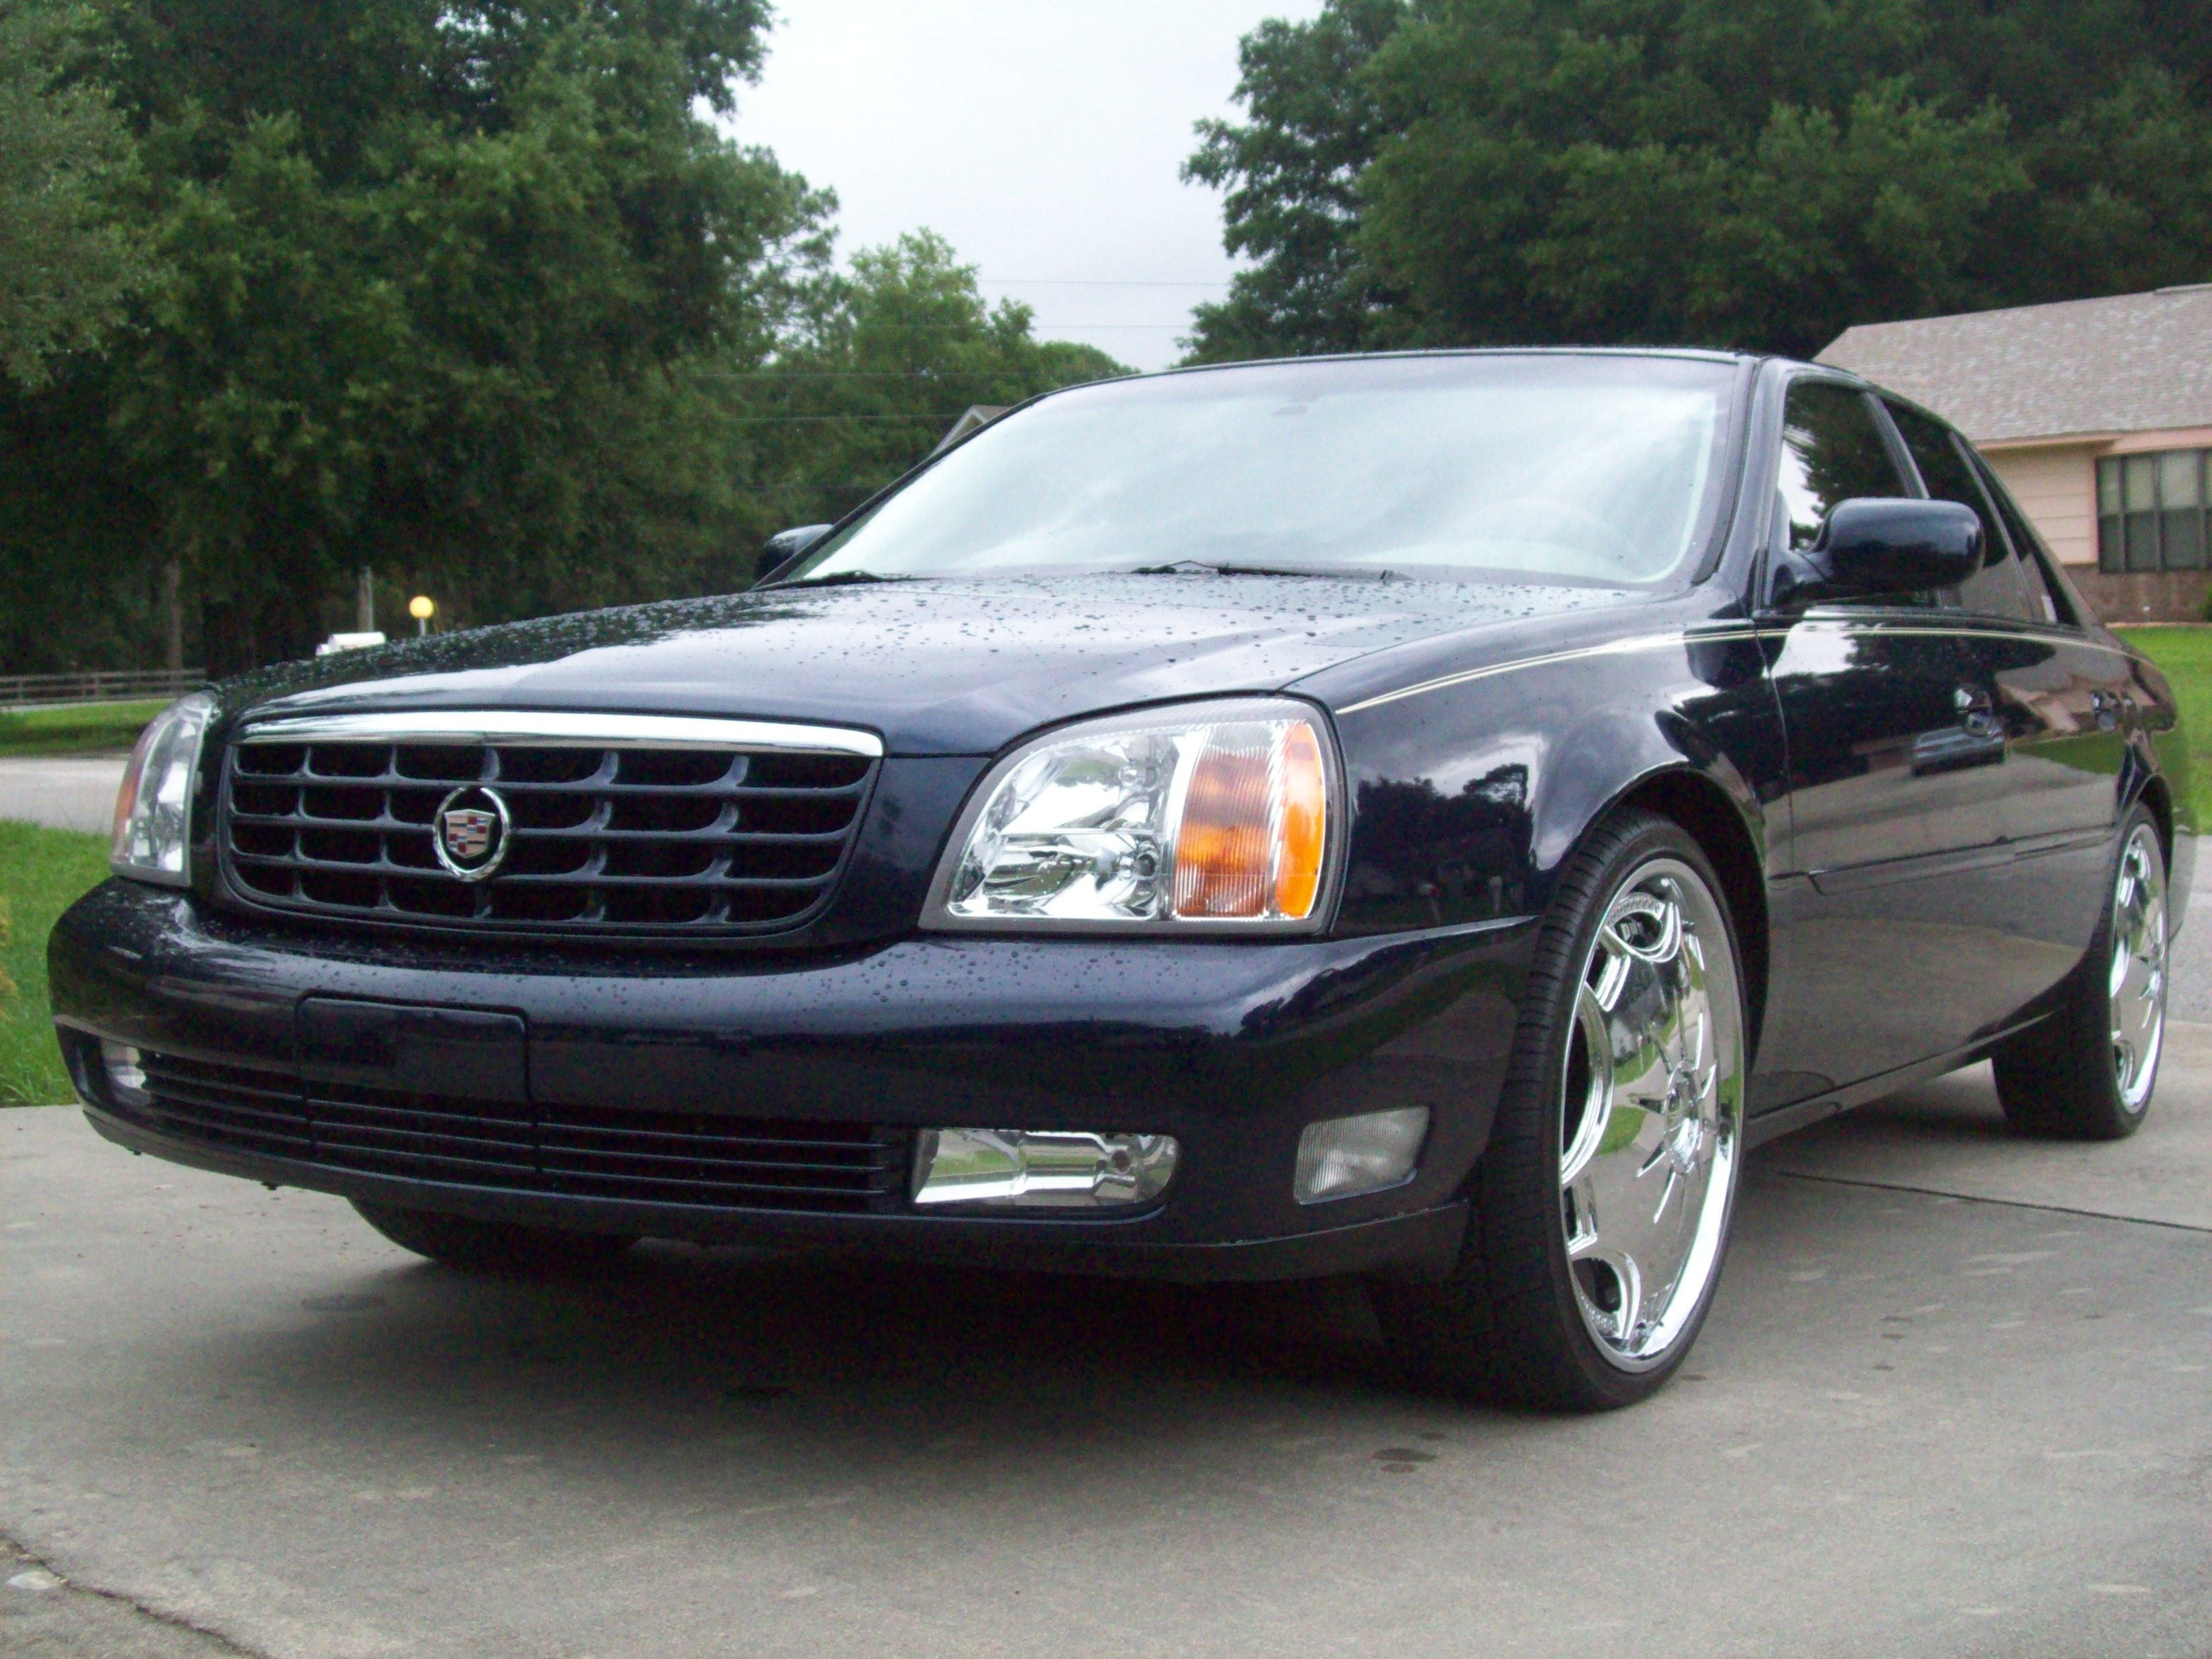 Another Blackknight_ent 2004 Cadillac DTS post... - 15191434